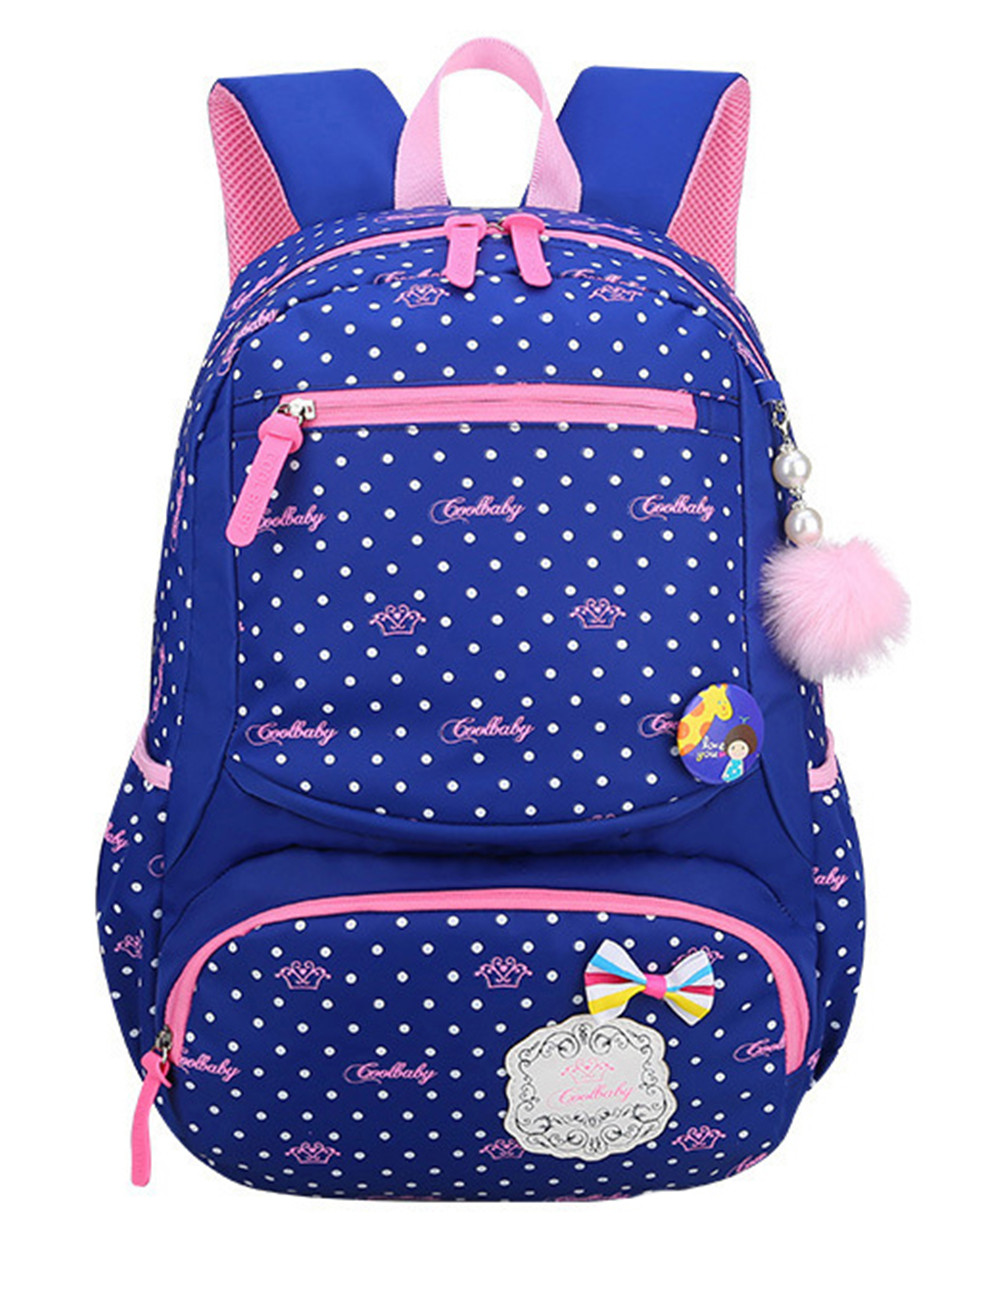 Kids in middle school or junior high have to make room in their backpacks for most of the same things elementary-aged children do, but because kids in this age group go through such rapid growth spurts, it's a good idea to make sure you focus on adjustable straps and plenty of pockets.